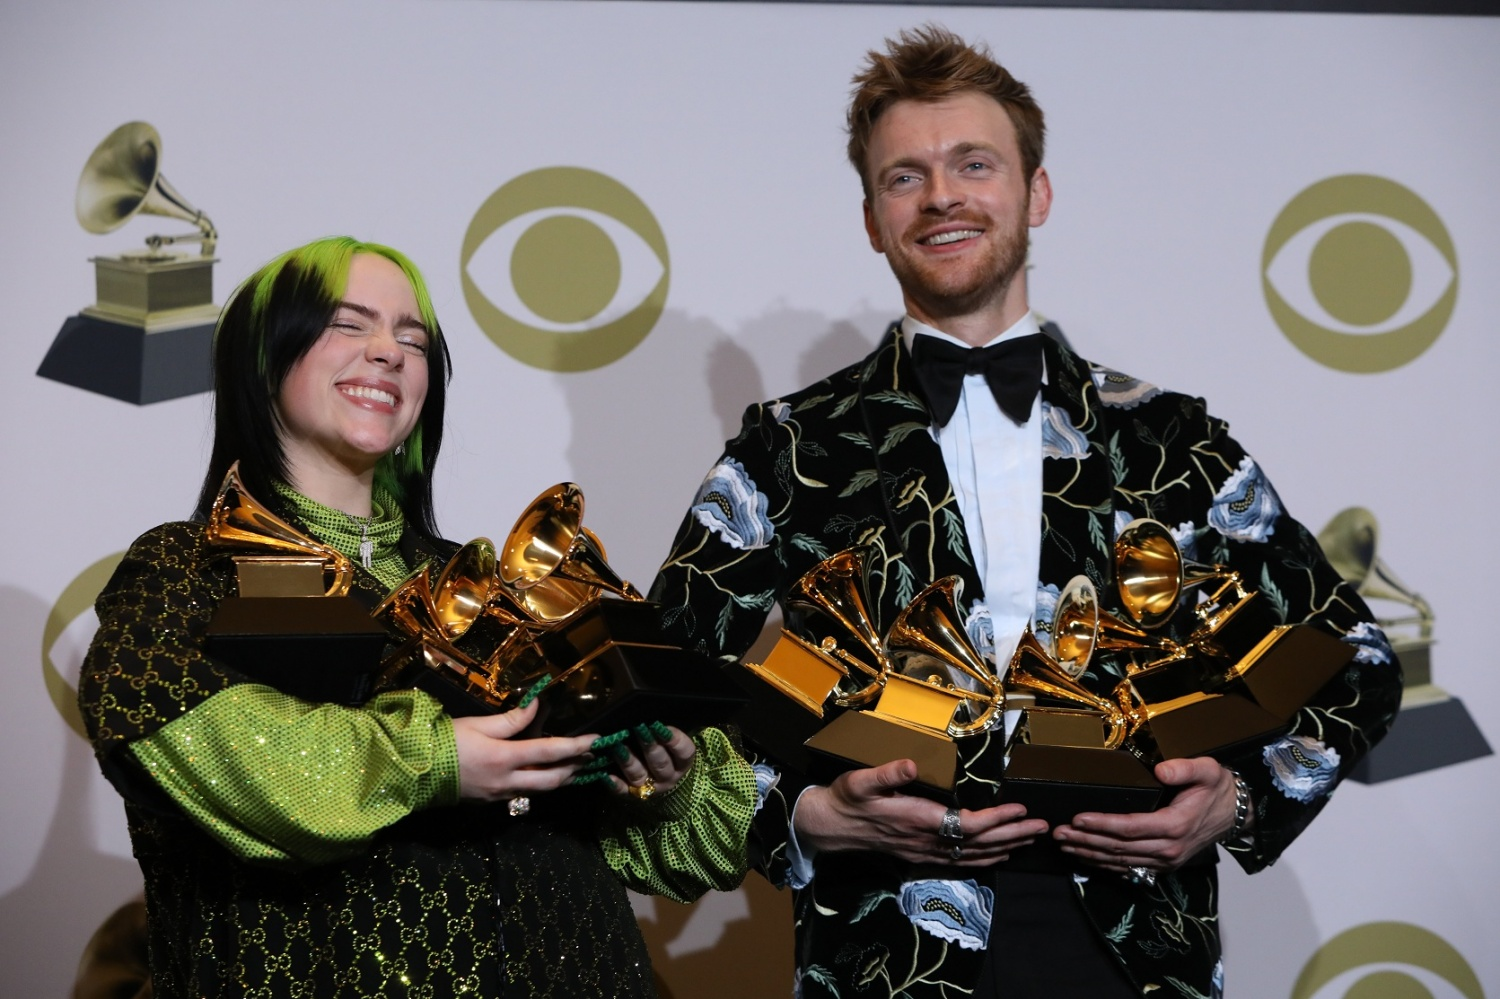 Billie Eilish and Finneas O'Connell backstage at Grammy's 2020